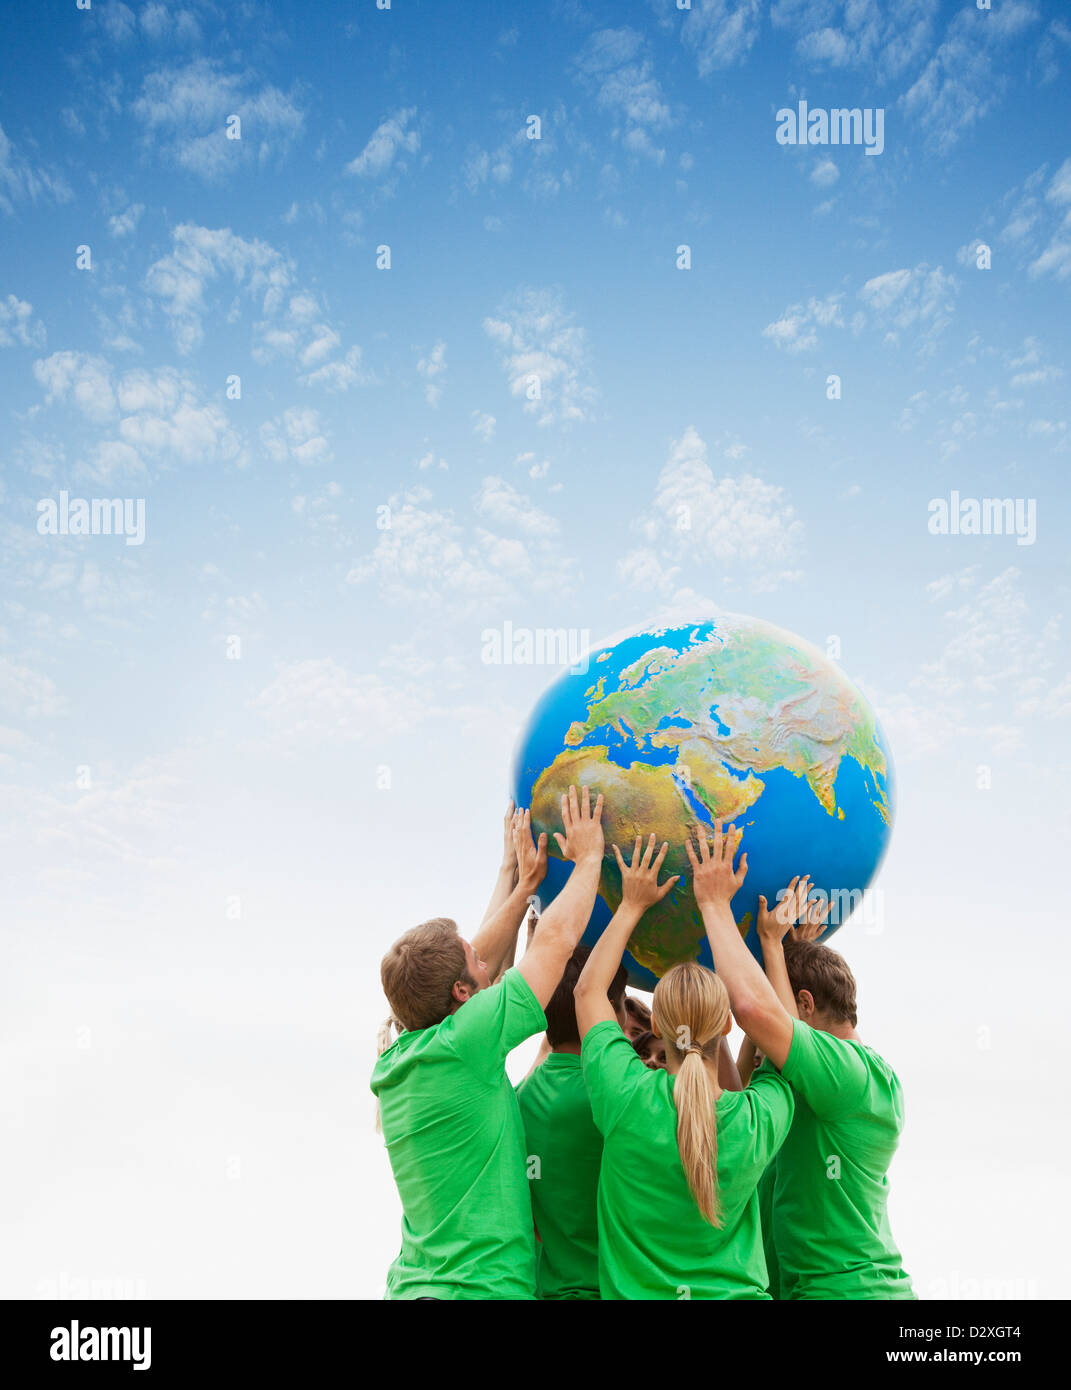 Team in green t-shirts lifting globe overhead - Stock Image